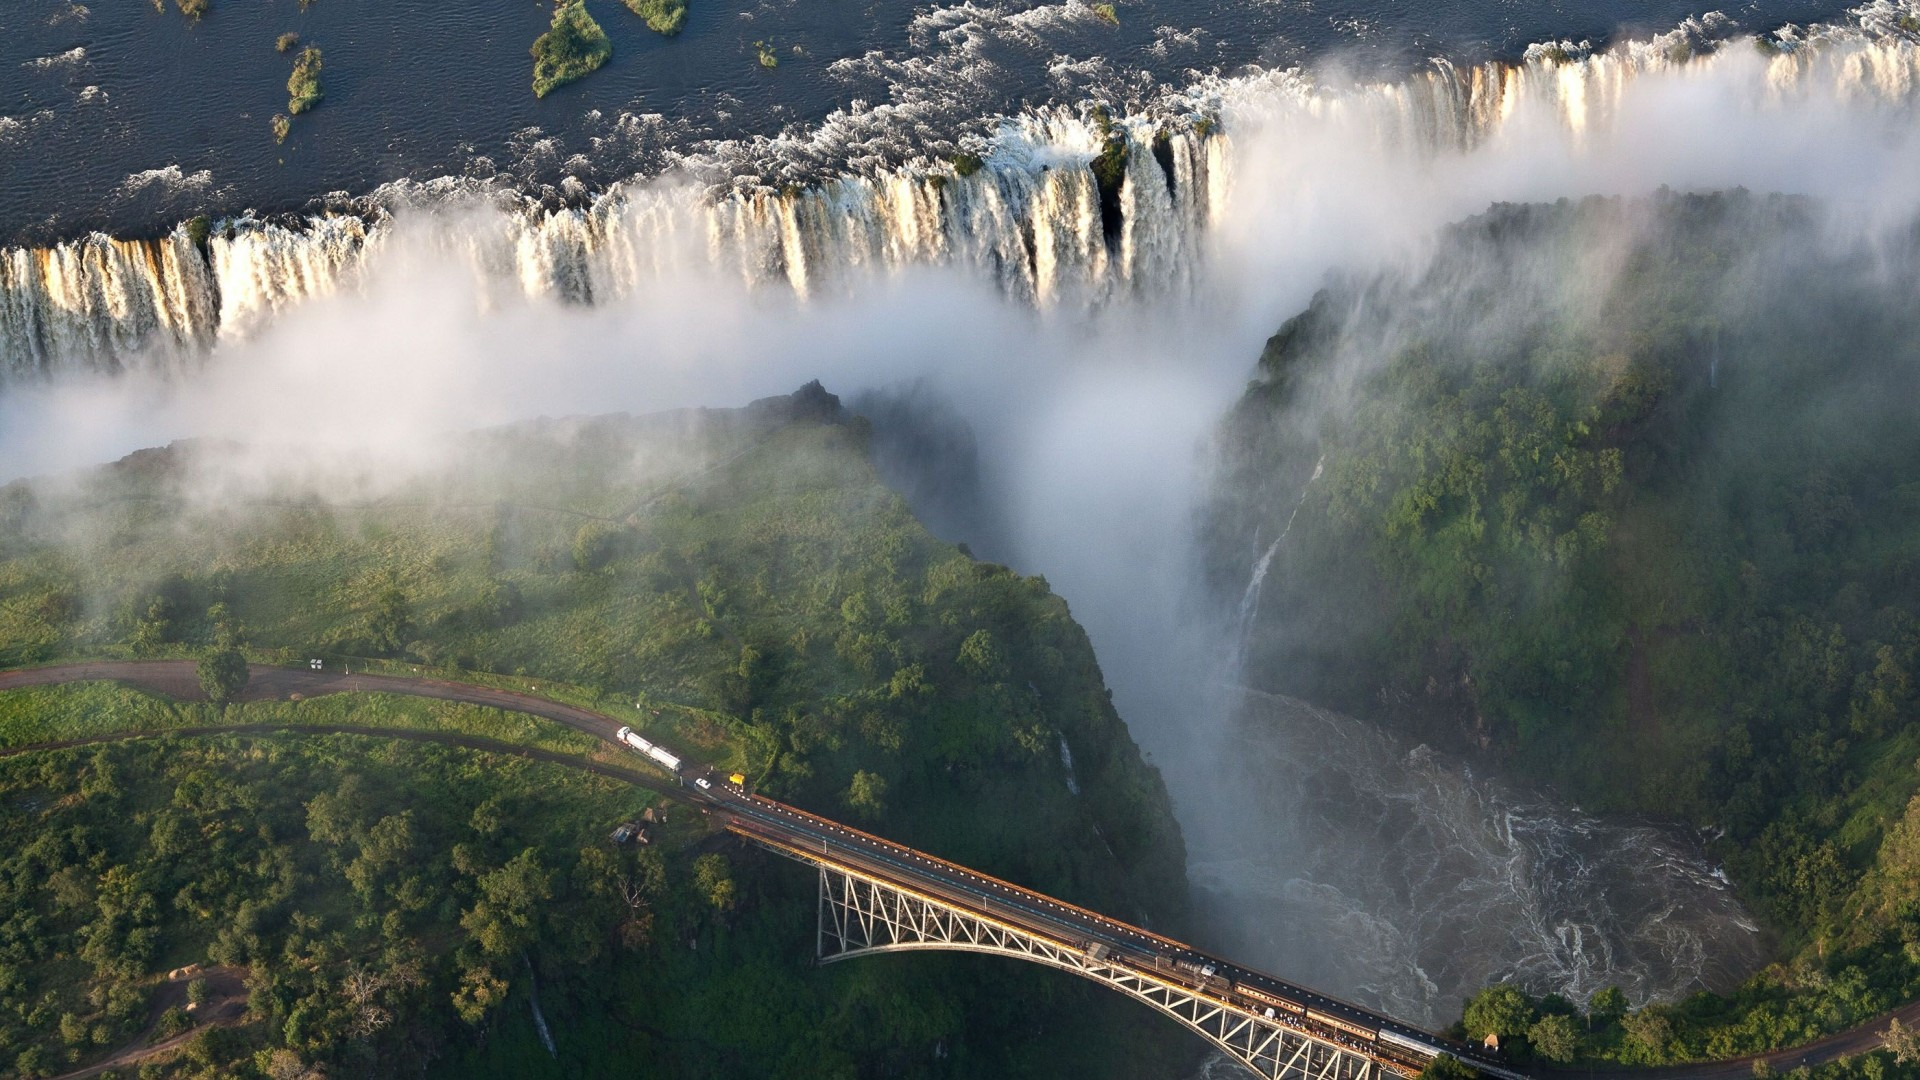 Victoria Falls Waterfall In Africa Thousand Wonders